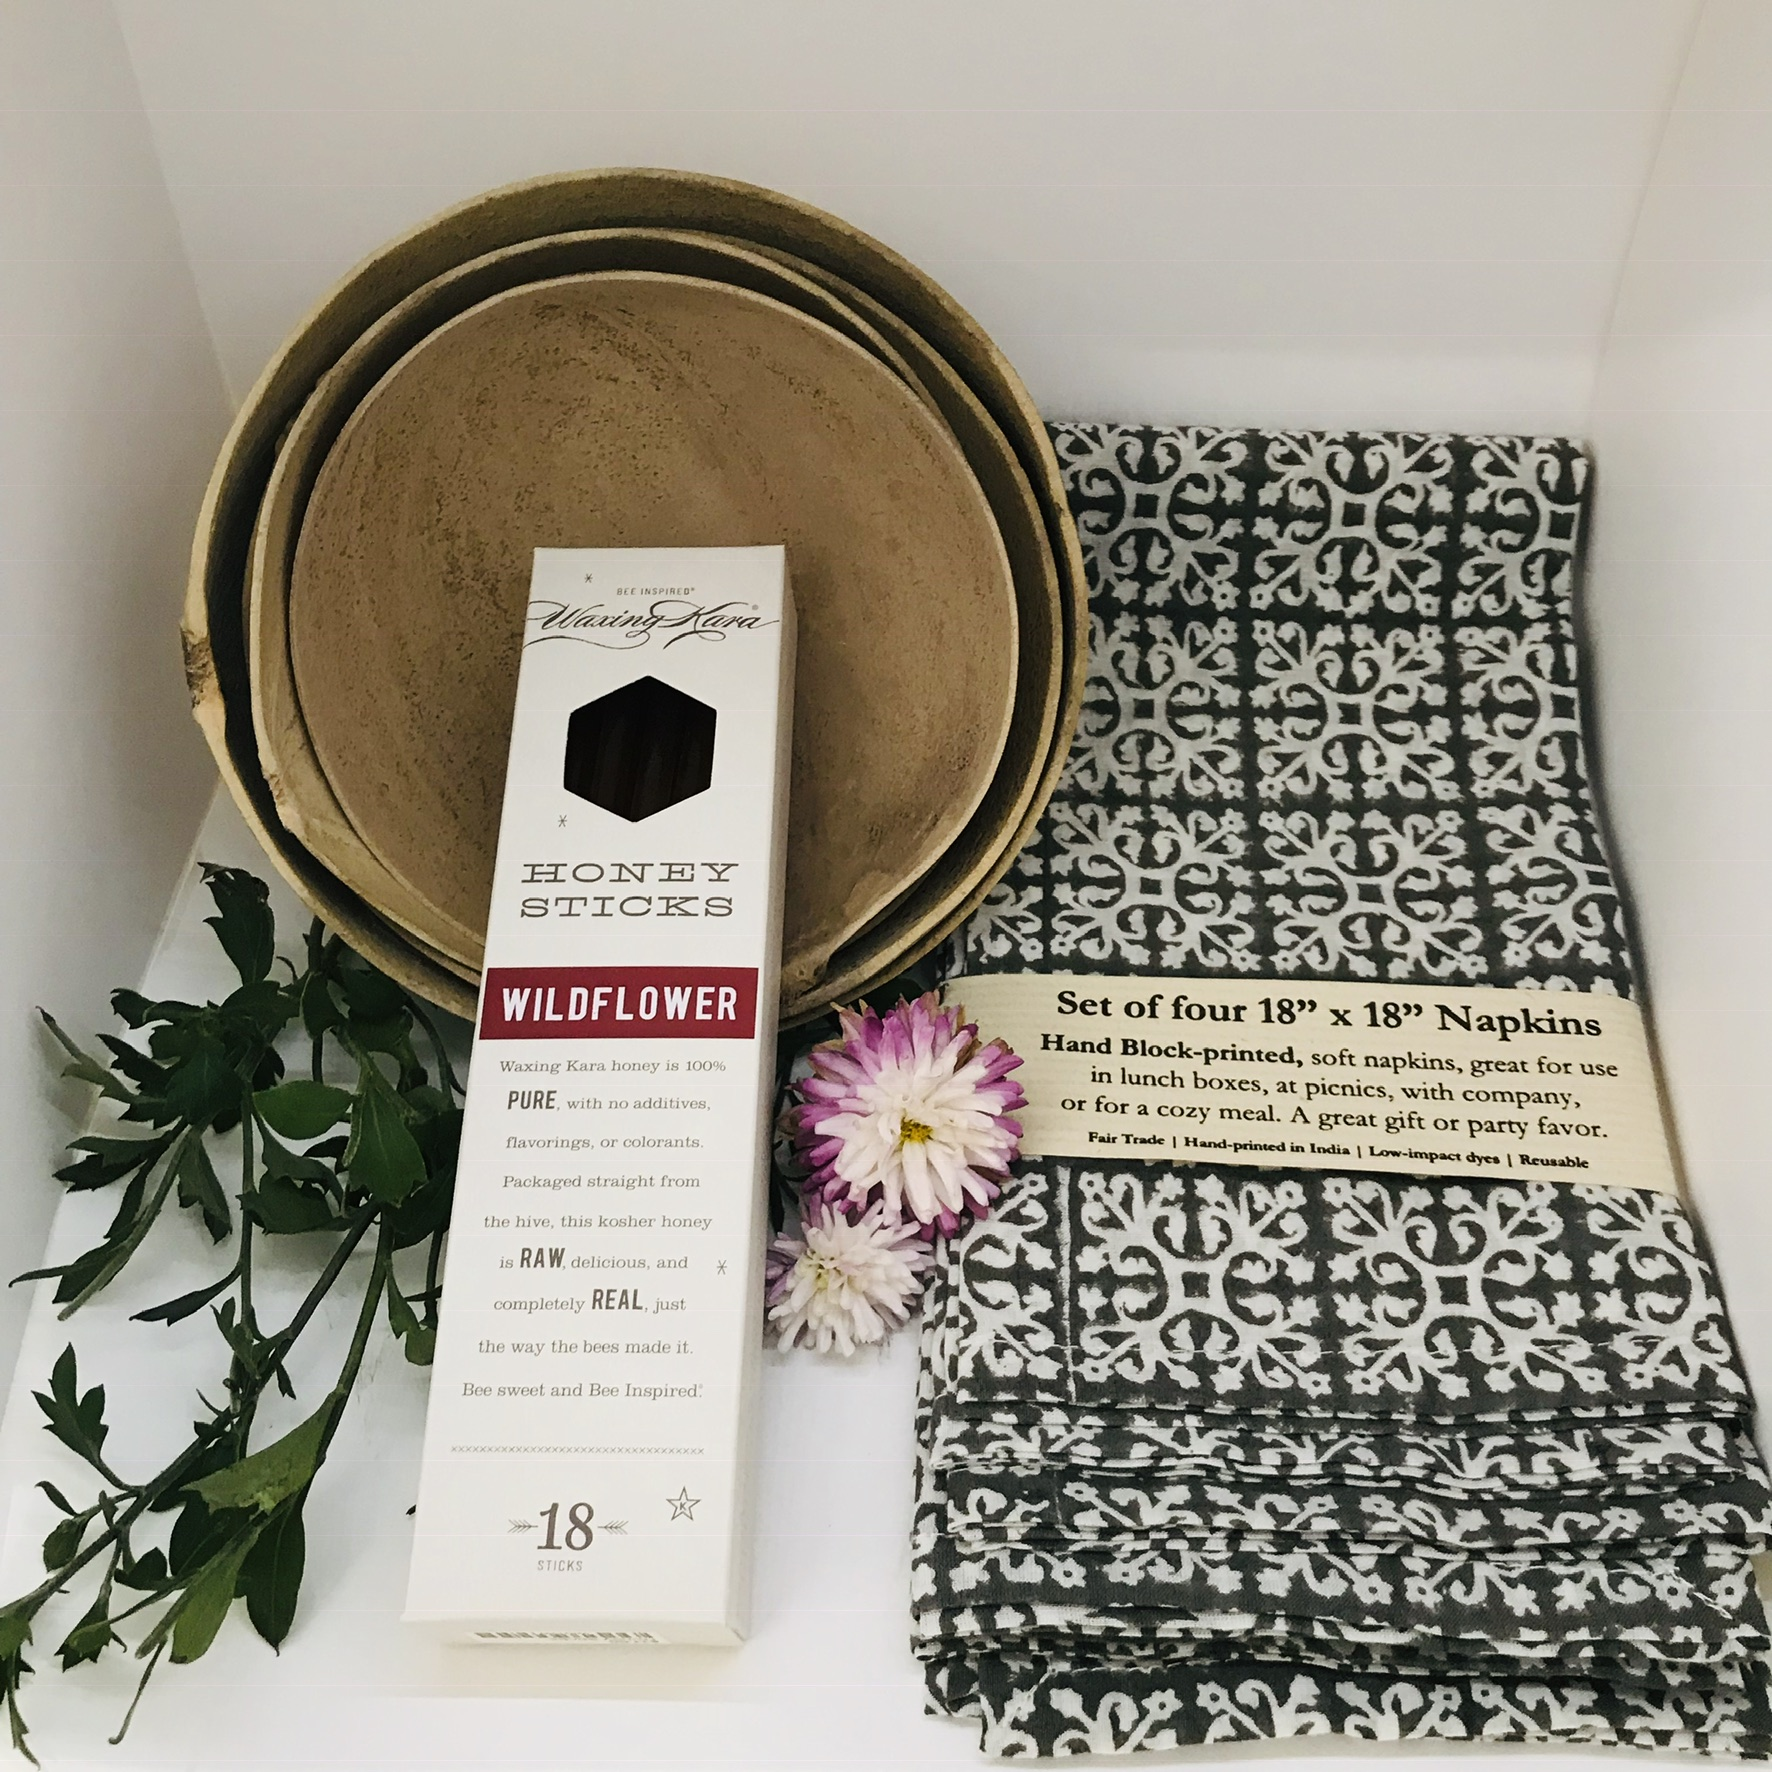 Gift for your Grandmother - Your grandmother will love this addition to dining room table with some custom napkins, gourd bowls, and honey sticks from Waxing Kara for her sweet tooth.